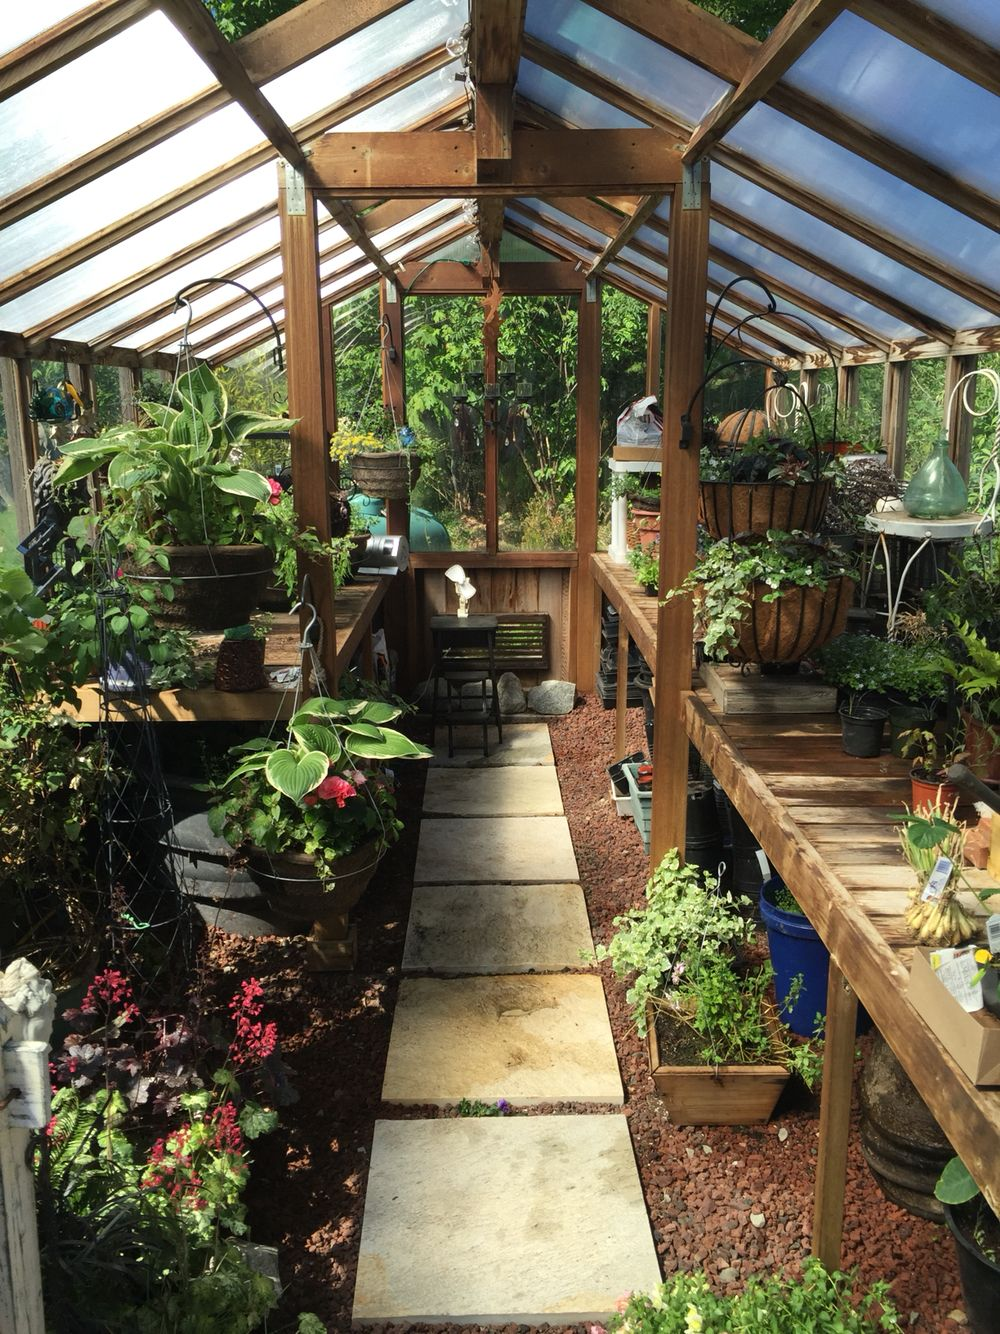 Pin by Gaston Dubo on greenhouse | Pinterest | Garden projects, Cold ...